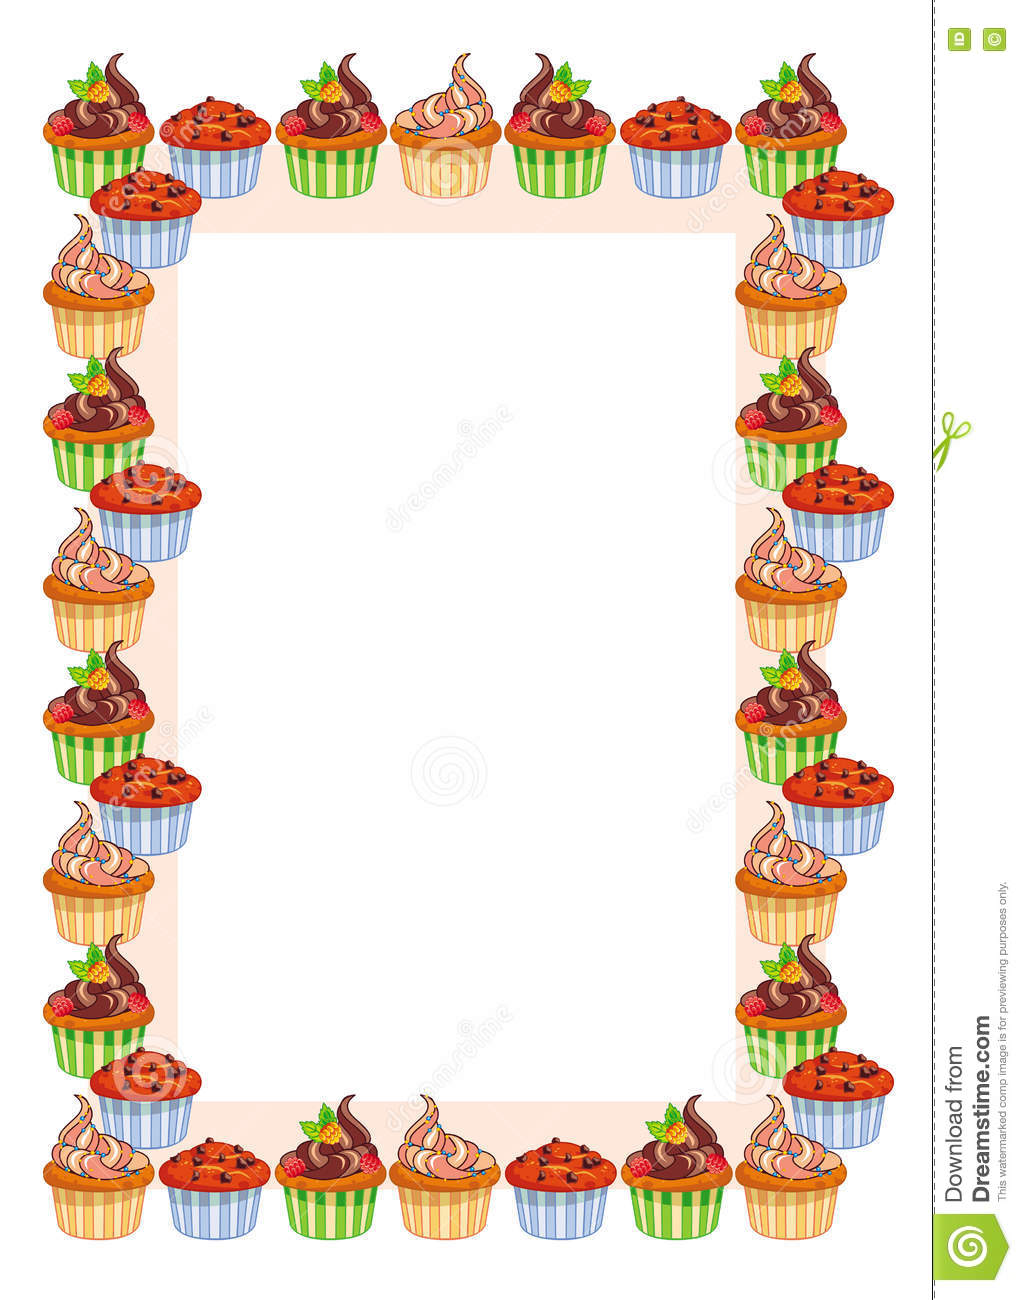 Vertical Frame With Muffins. Stock Illustration - Image